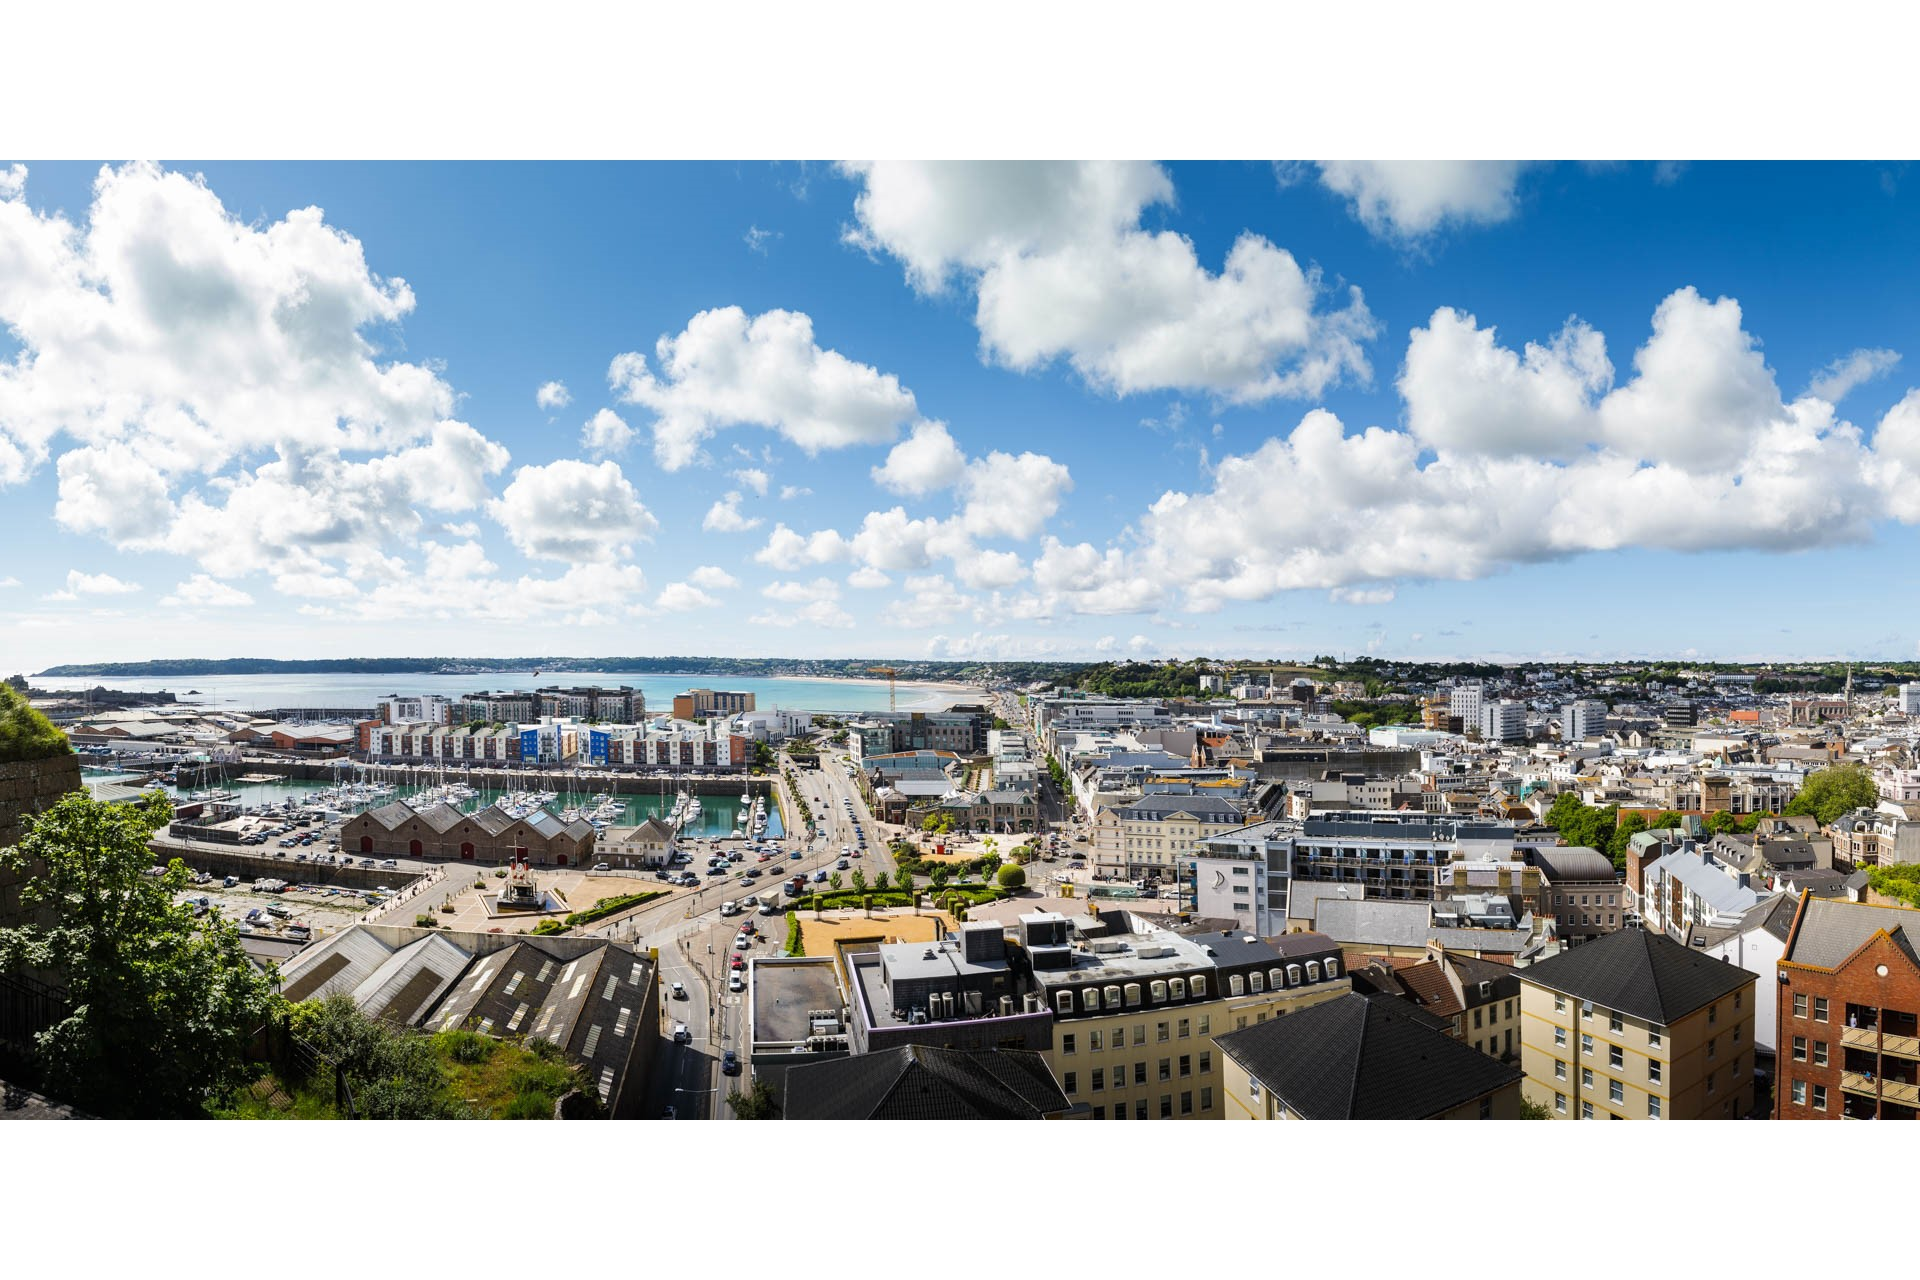 Panoramic Aerial View of St Helier town and harbour